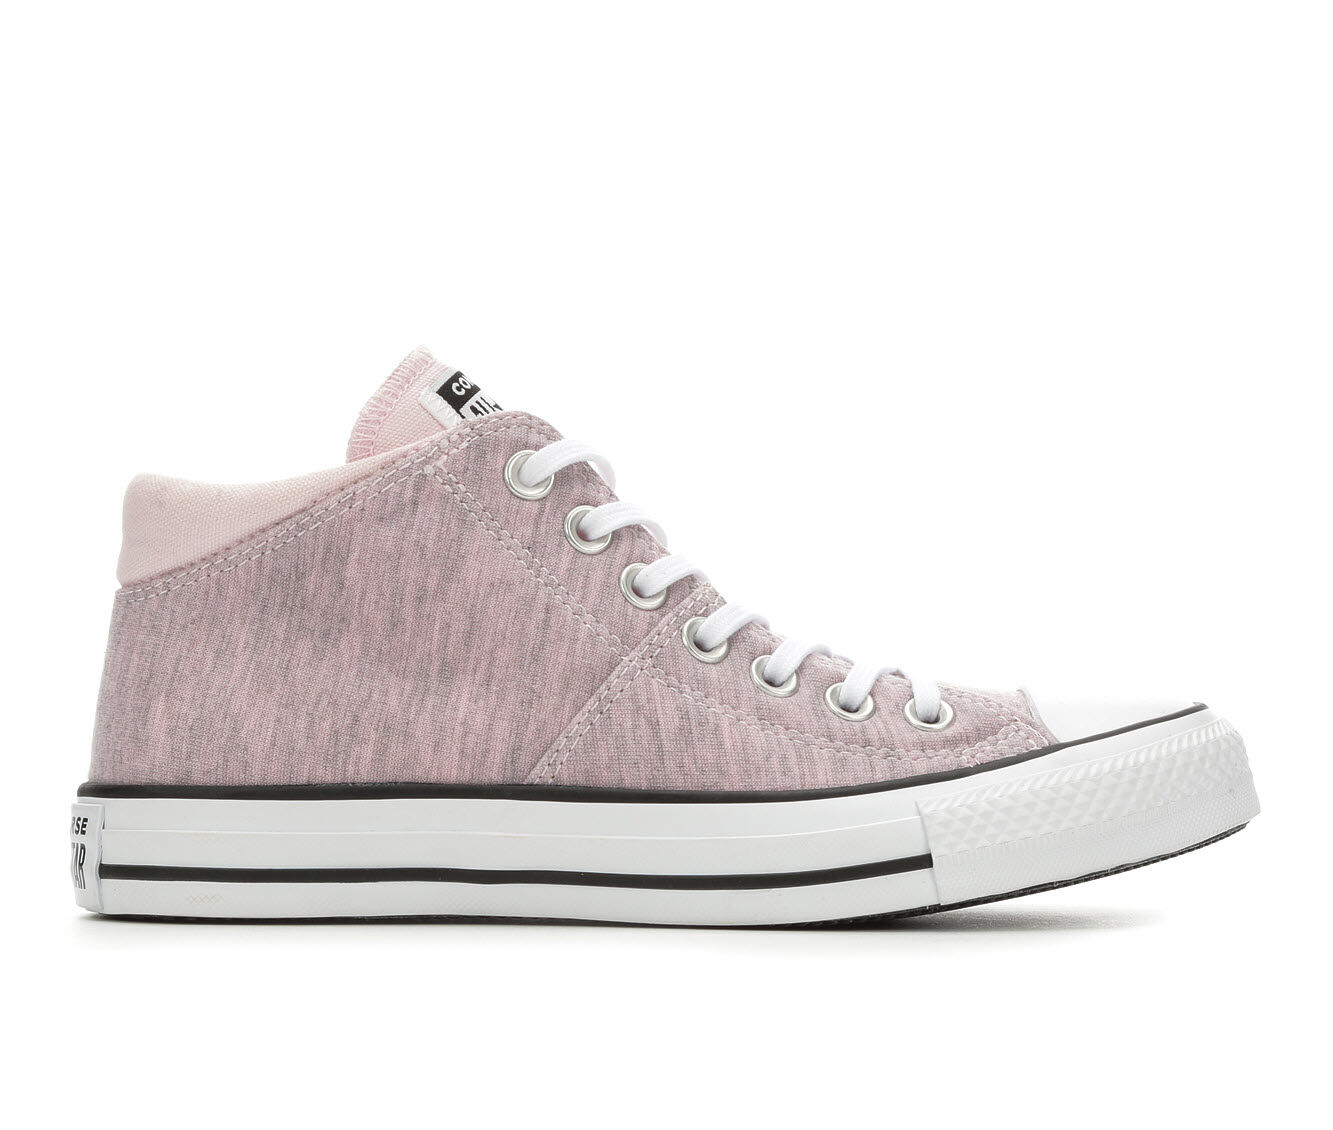 Women's Converse Madison Mid Jersey Sneakers Pink/White/Blk